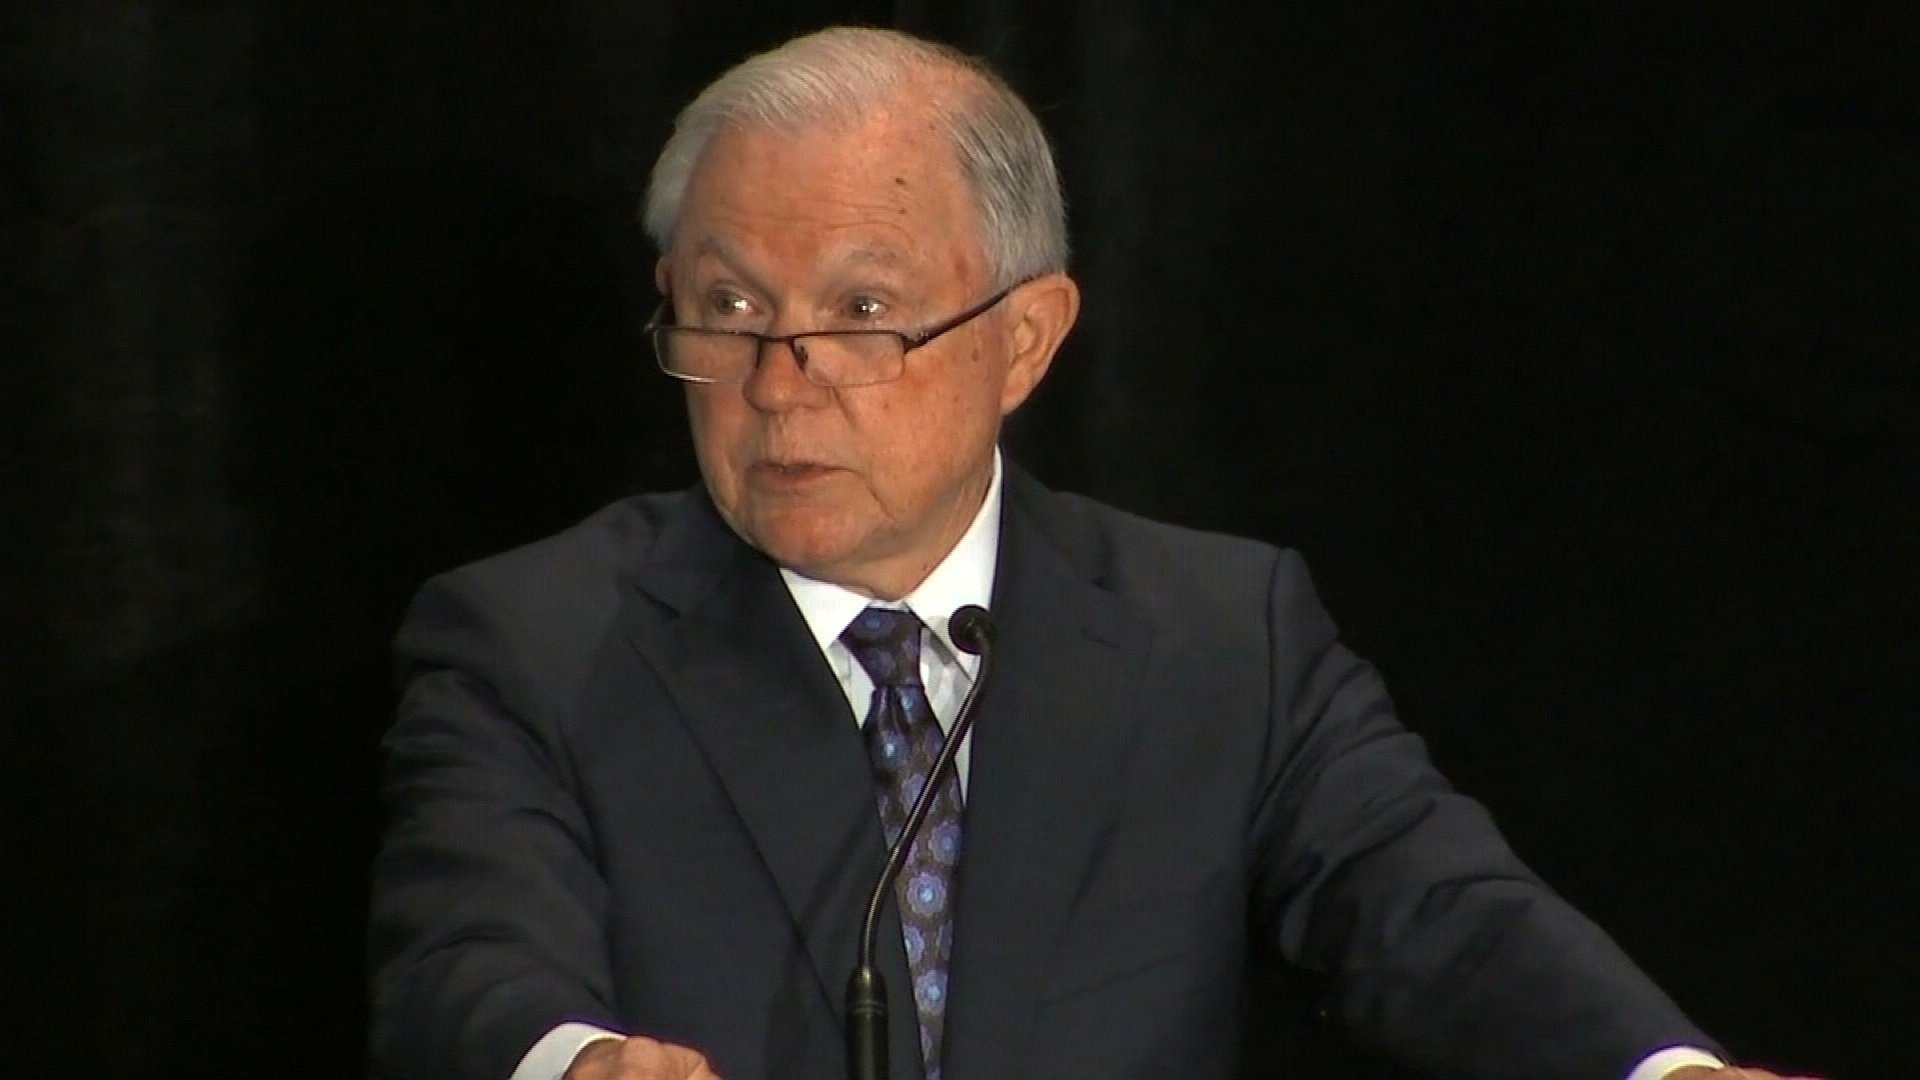 Attorney General Jeff Sessions is taking responsibility for authorizing Deputy Attorney General Rod Rosenstein to remain in charge of the Russia investigation, and detailed the process by which former FBI Director James Comey was fired. (FILE)